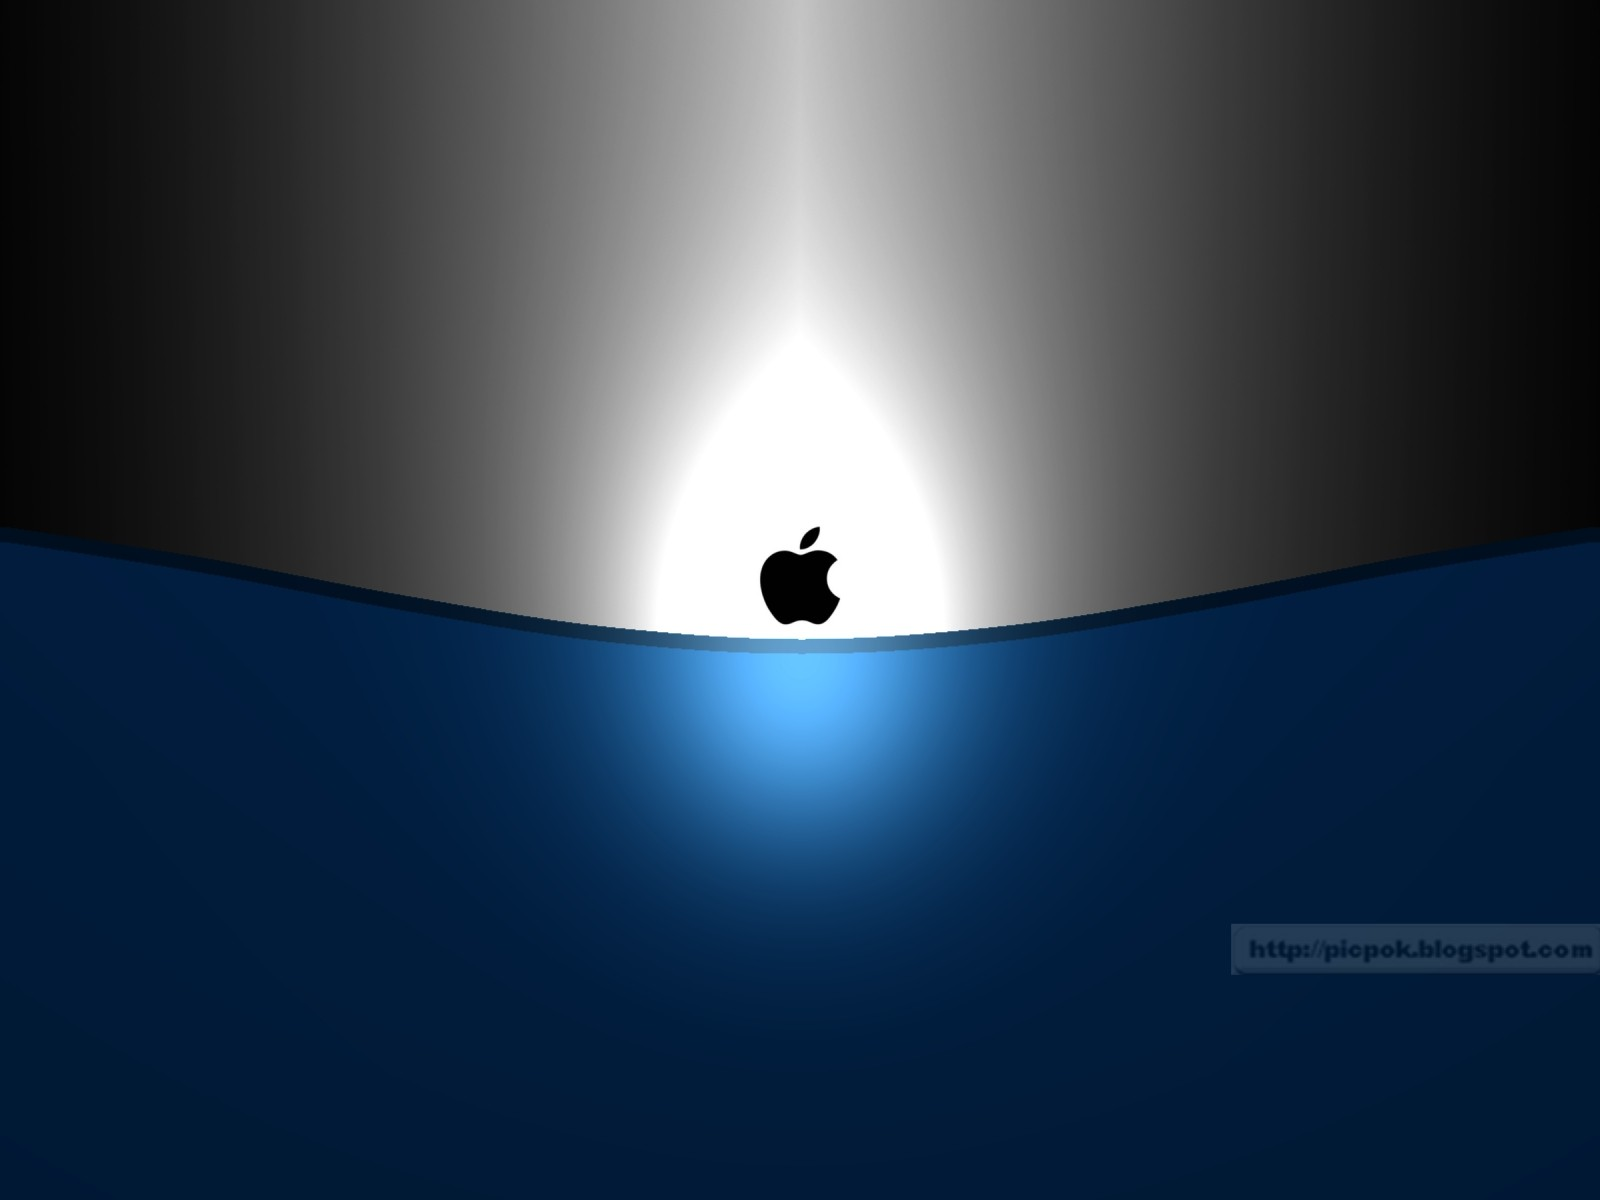 Mac Light Lite By AmphionZethus